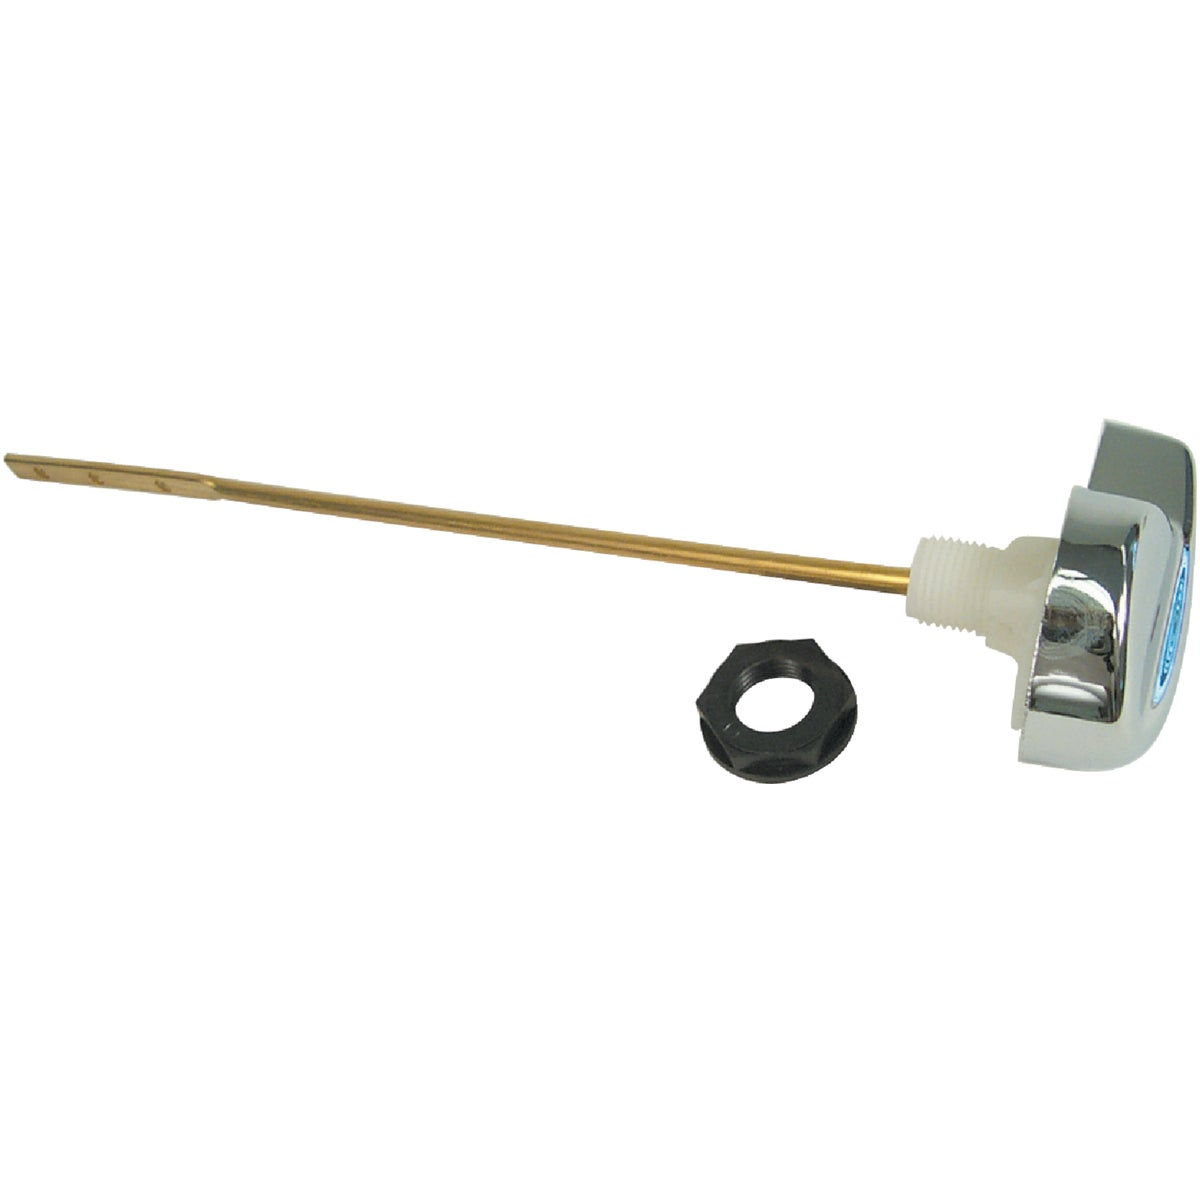 CHROME FLUSH LEVER - 473316 by Do it Best